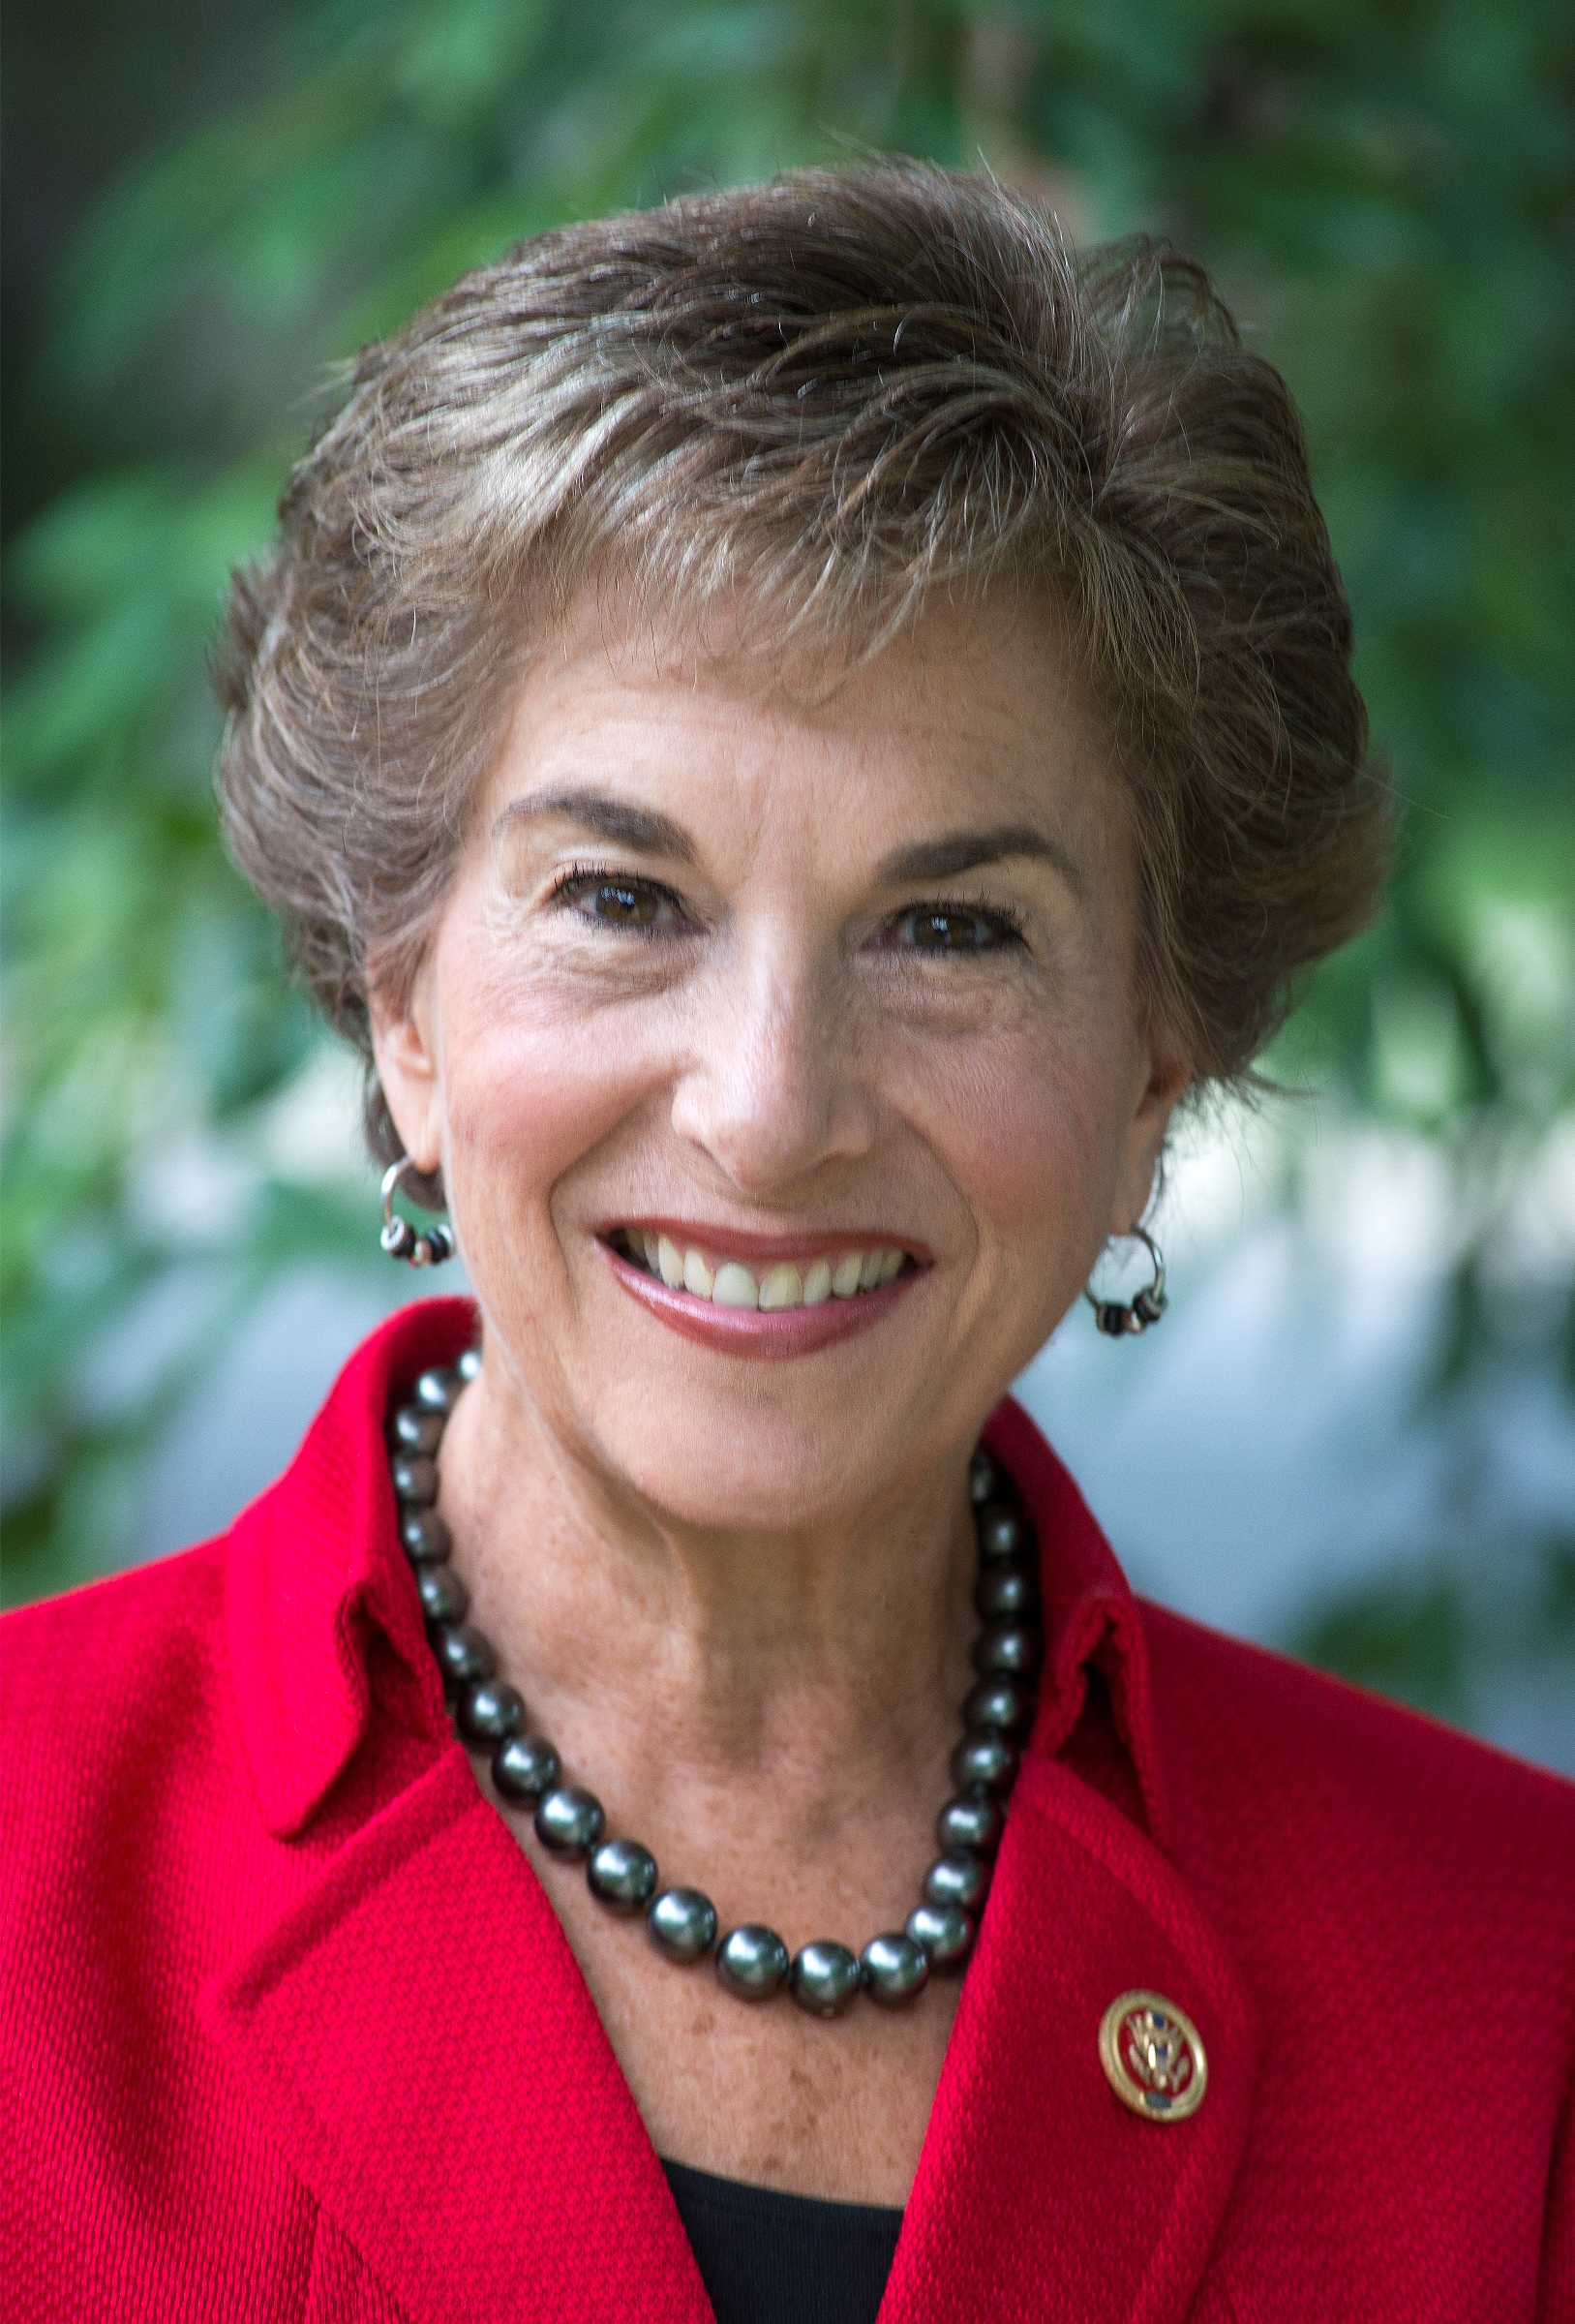 Jan Schakowsky was elected to represent Illinois' 9th Congressional District in 1998